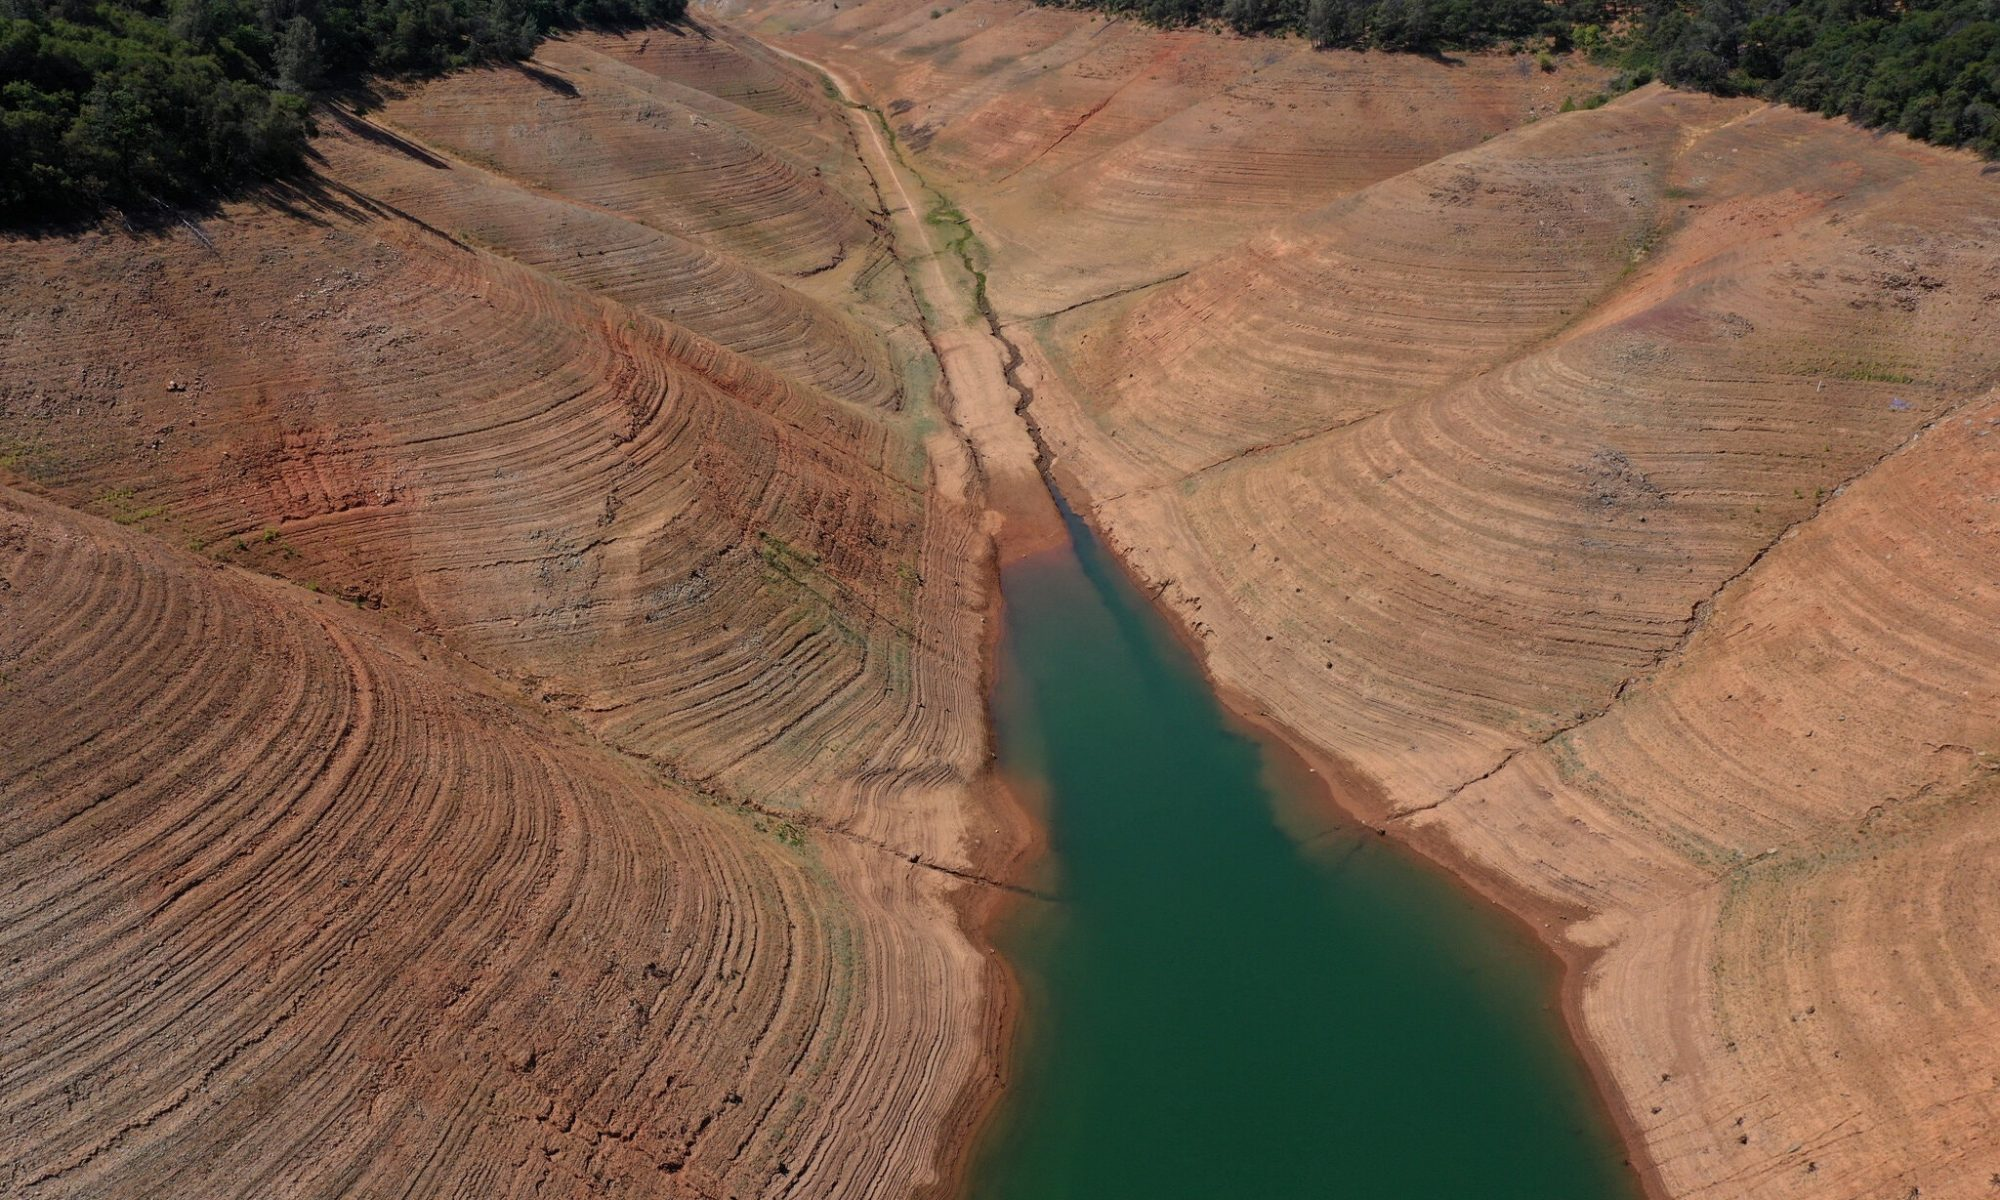 A river that is drying up